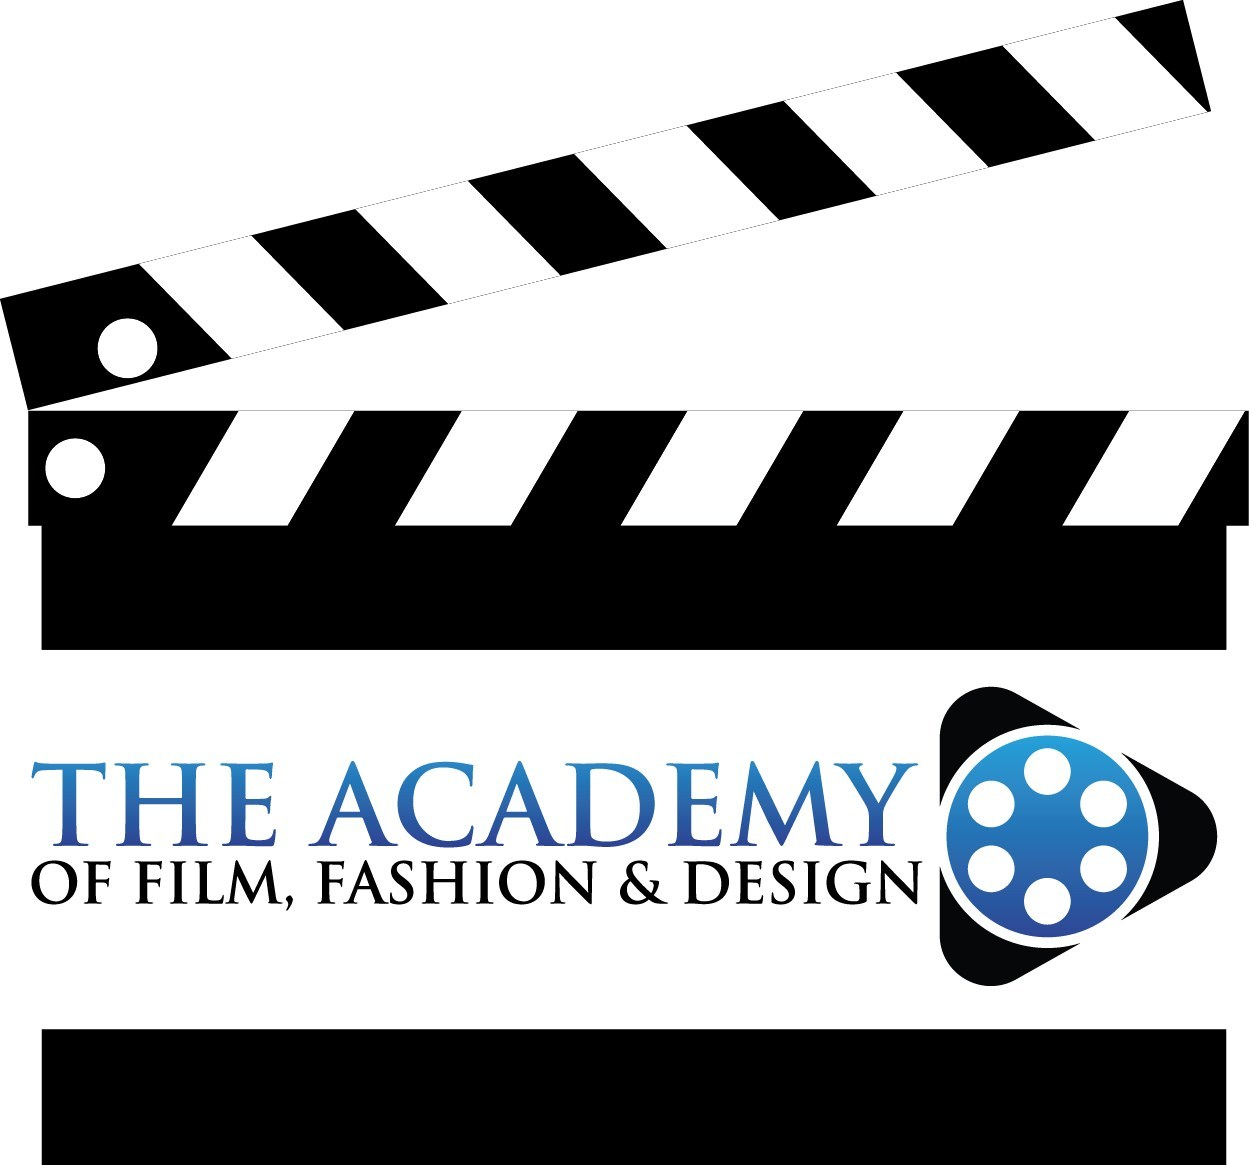 The Academy Of Film Fashion Design Llc Launches 50 New E Learning Courses